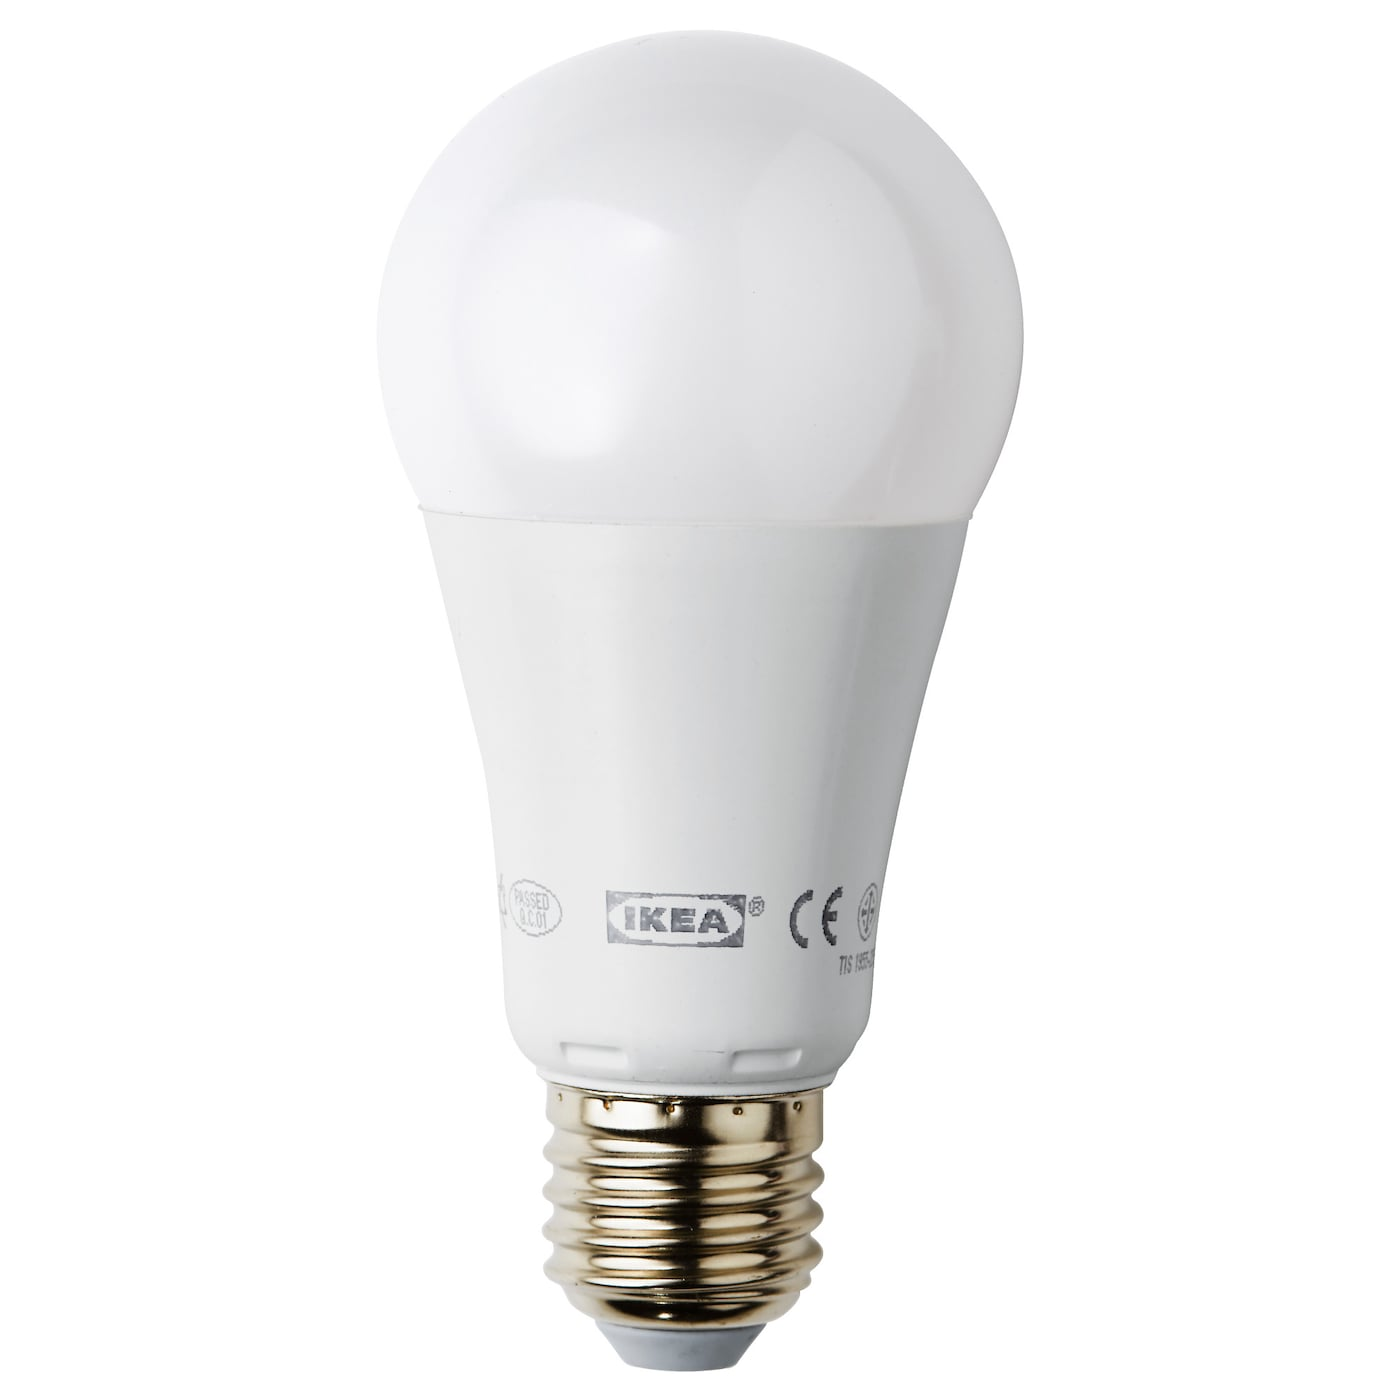 Ledare led bulb e27 1000 lumen dimmable globe opal white ikea Led bulbs